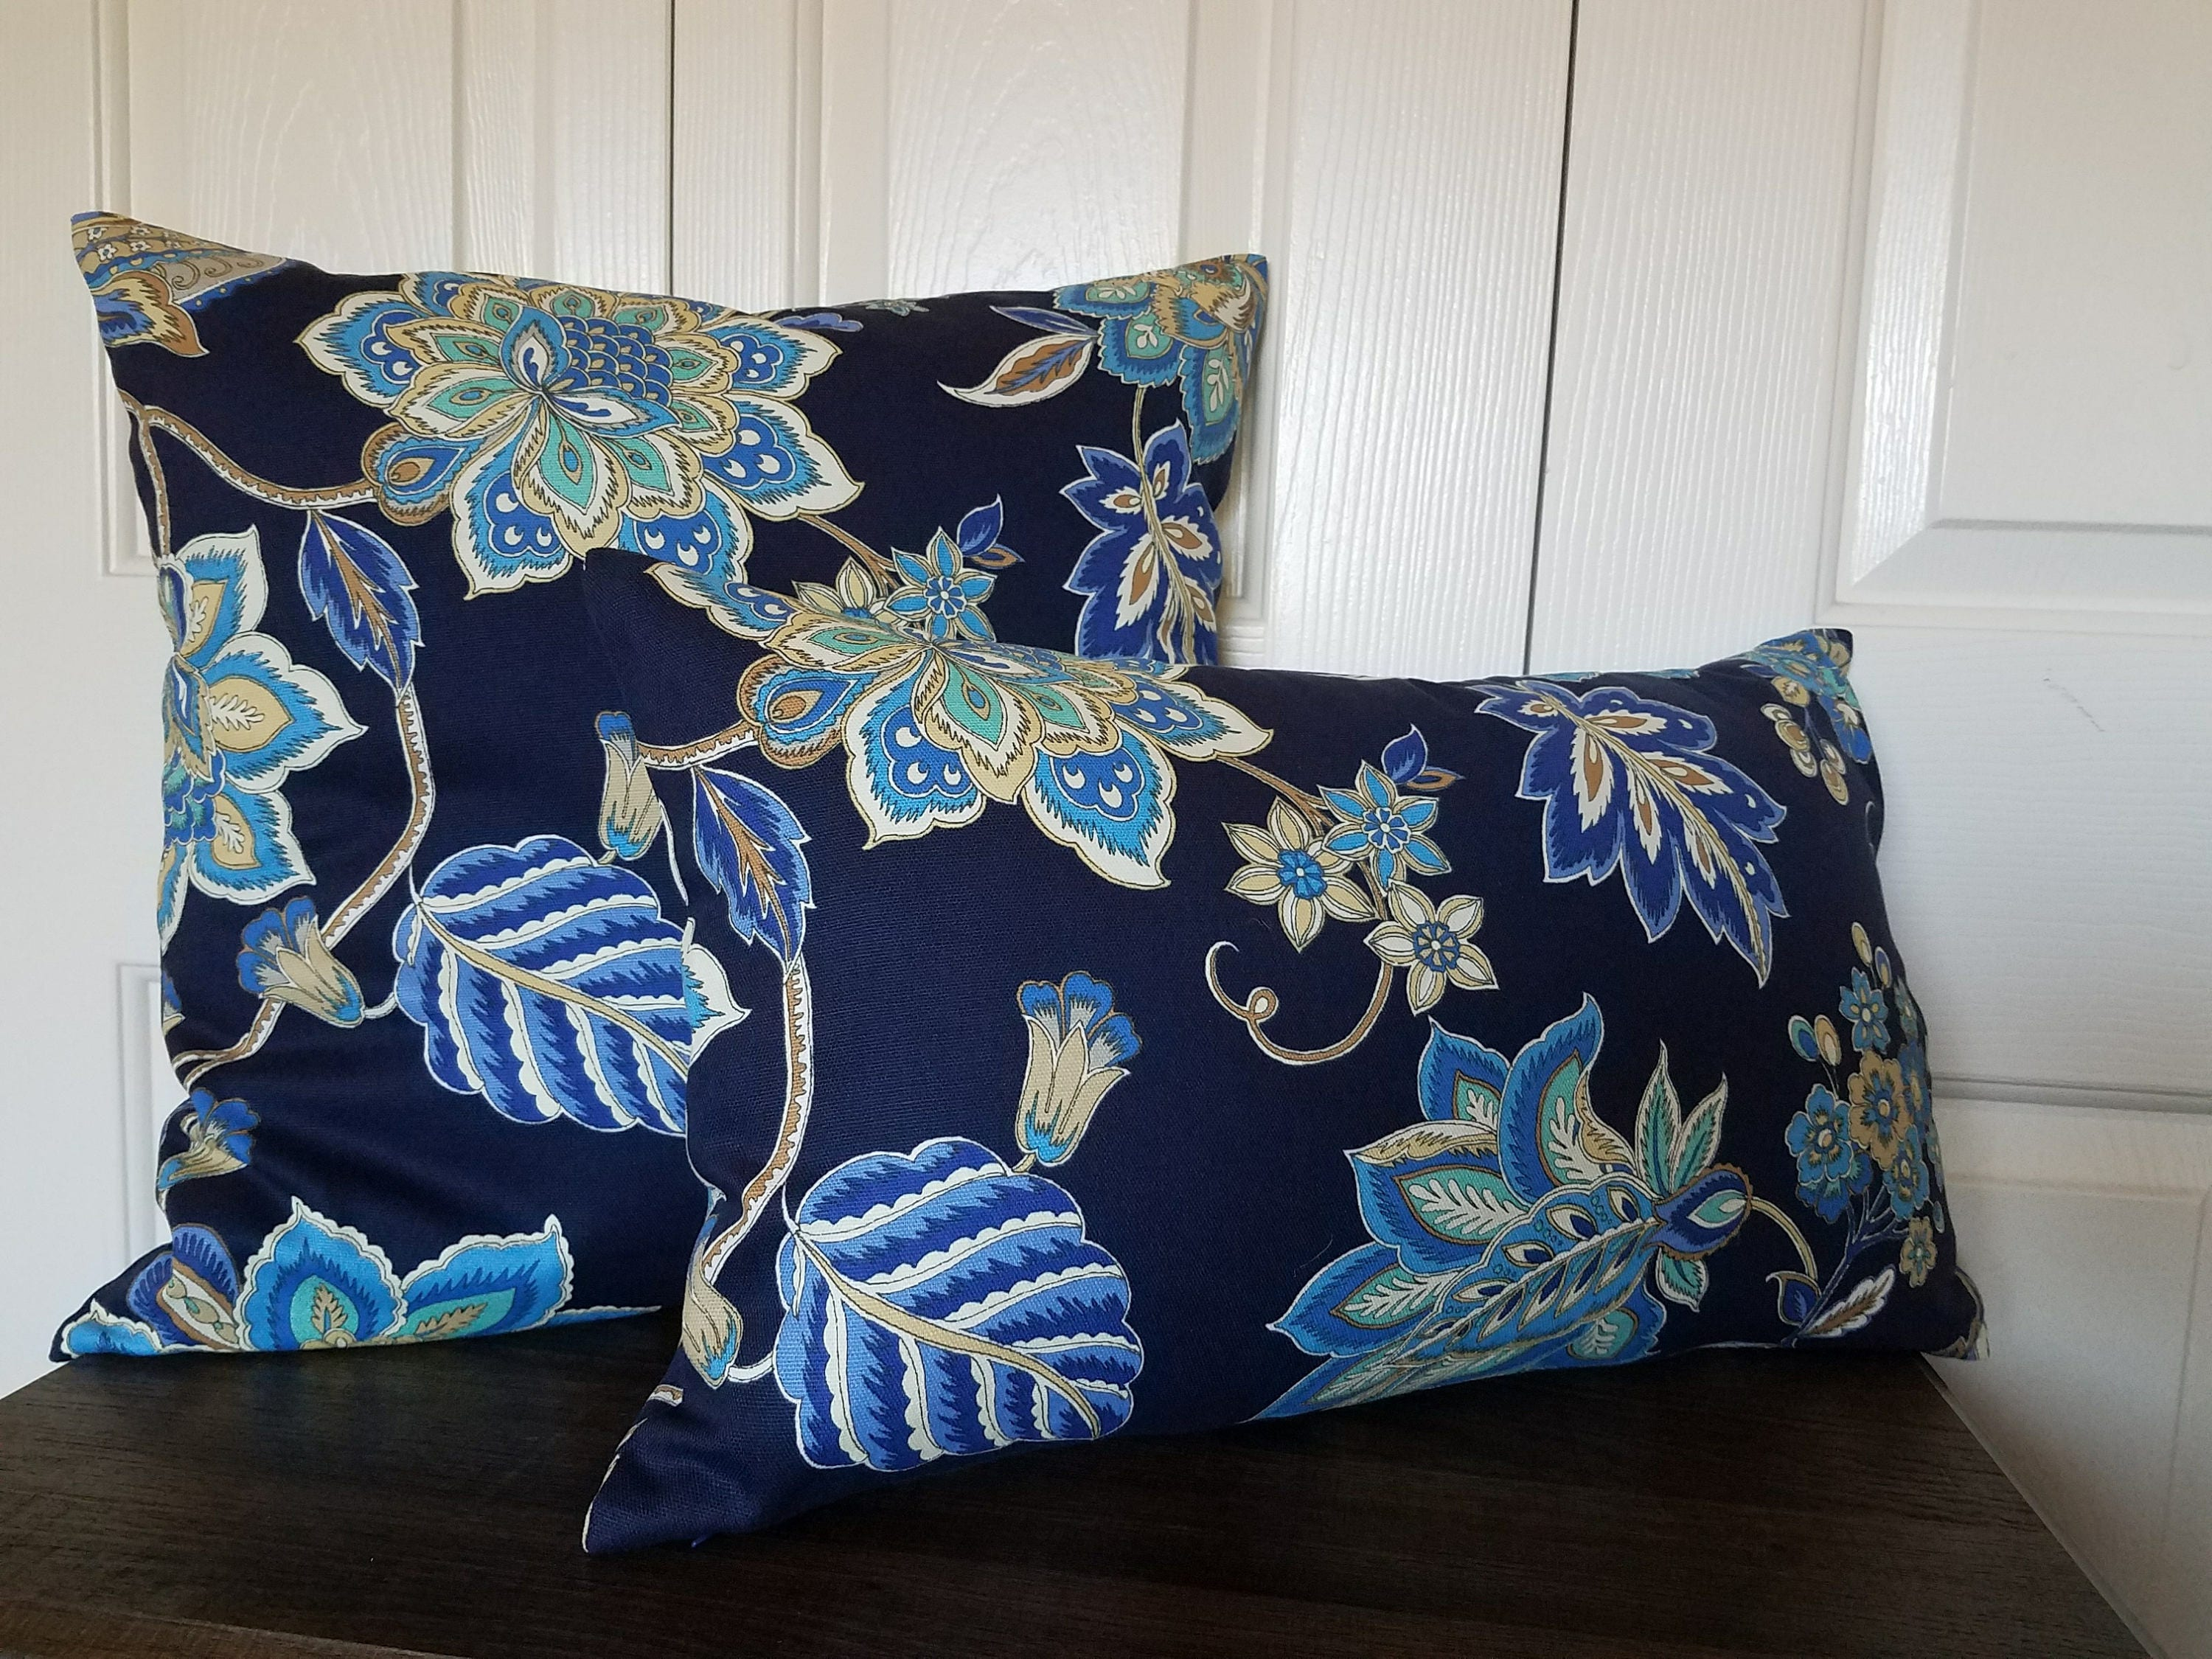 Blue Throw Pillow Cover.Pillow Covers.Navy Blue Beige Ivory